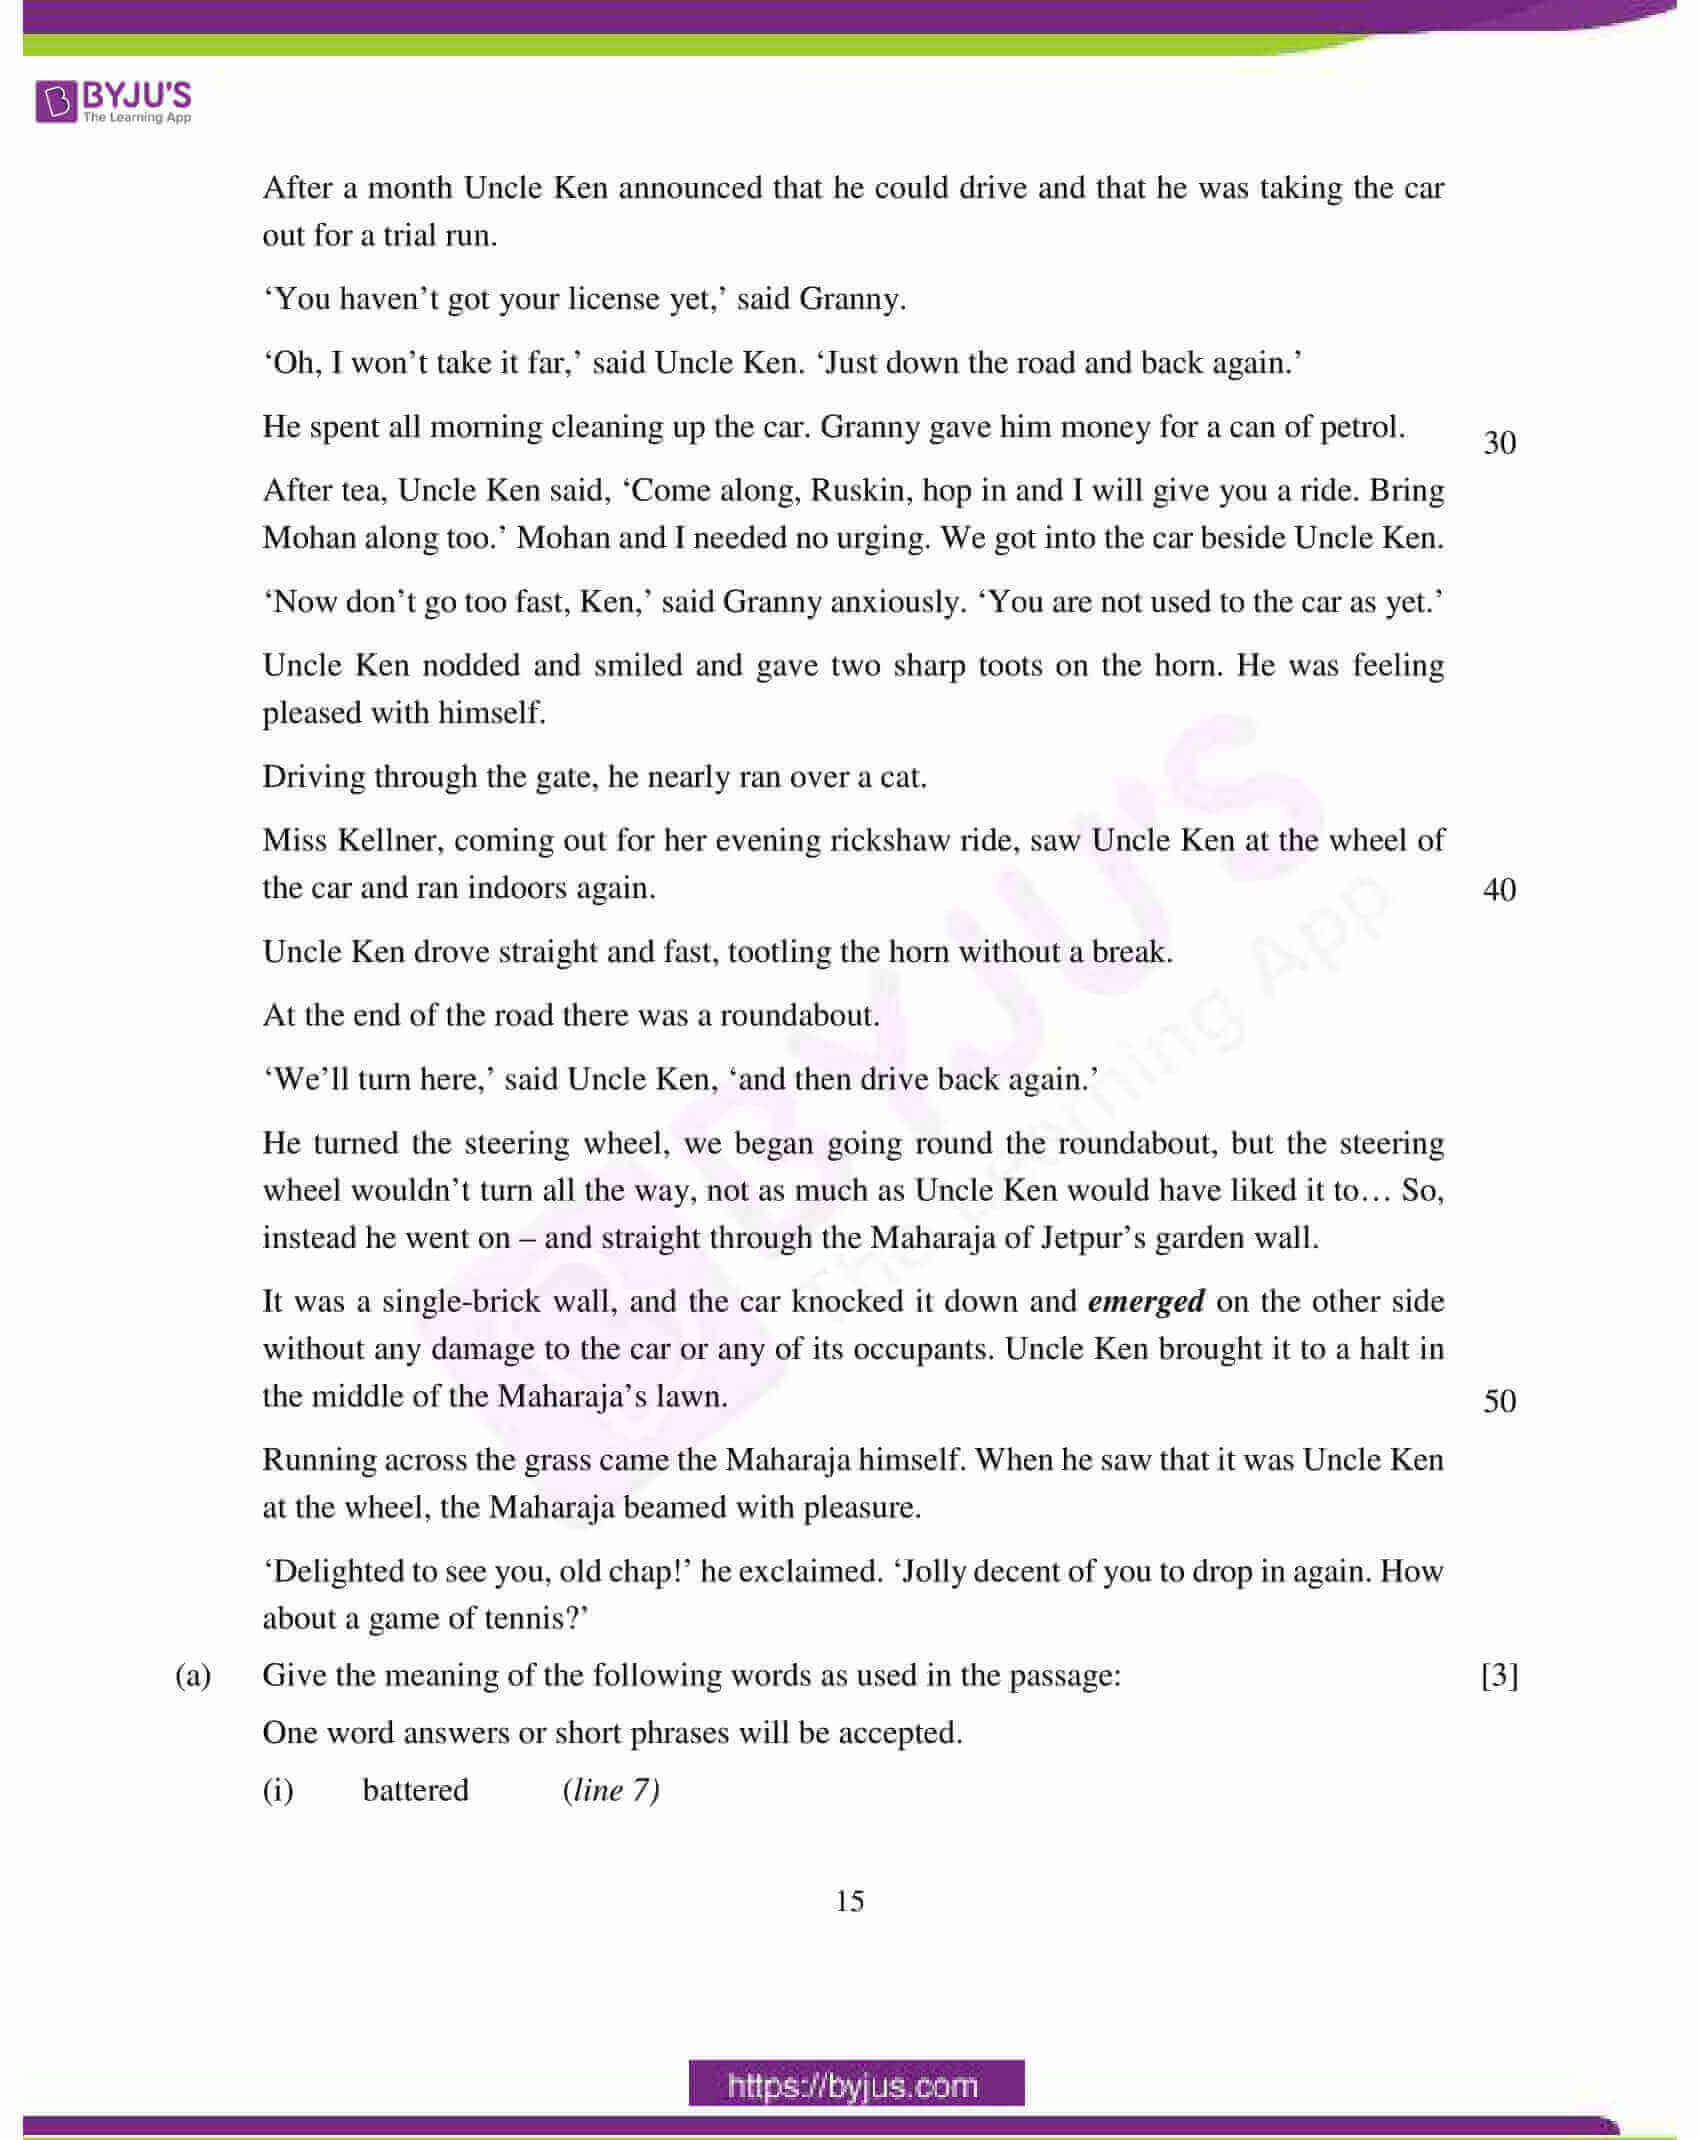 icse class 10 english lan question paper solution 2018 06